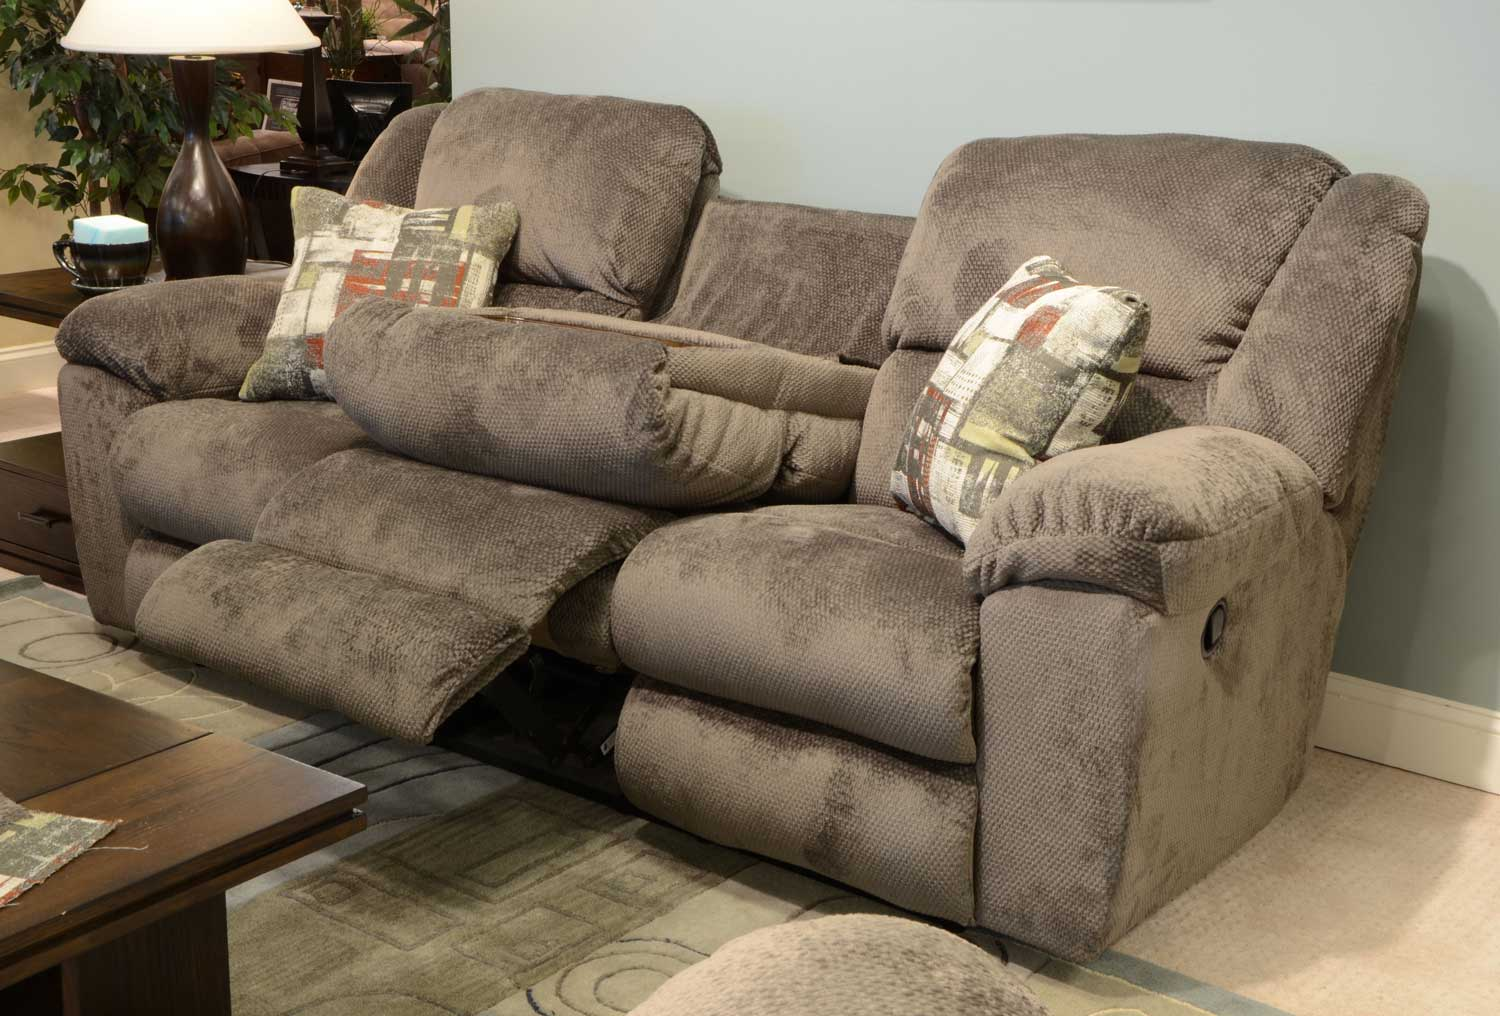 Catnapper Transformer Ultimate Sofa Set With 3 Recliners